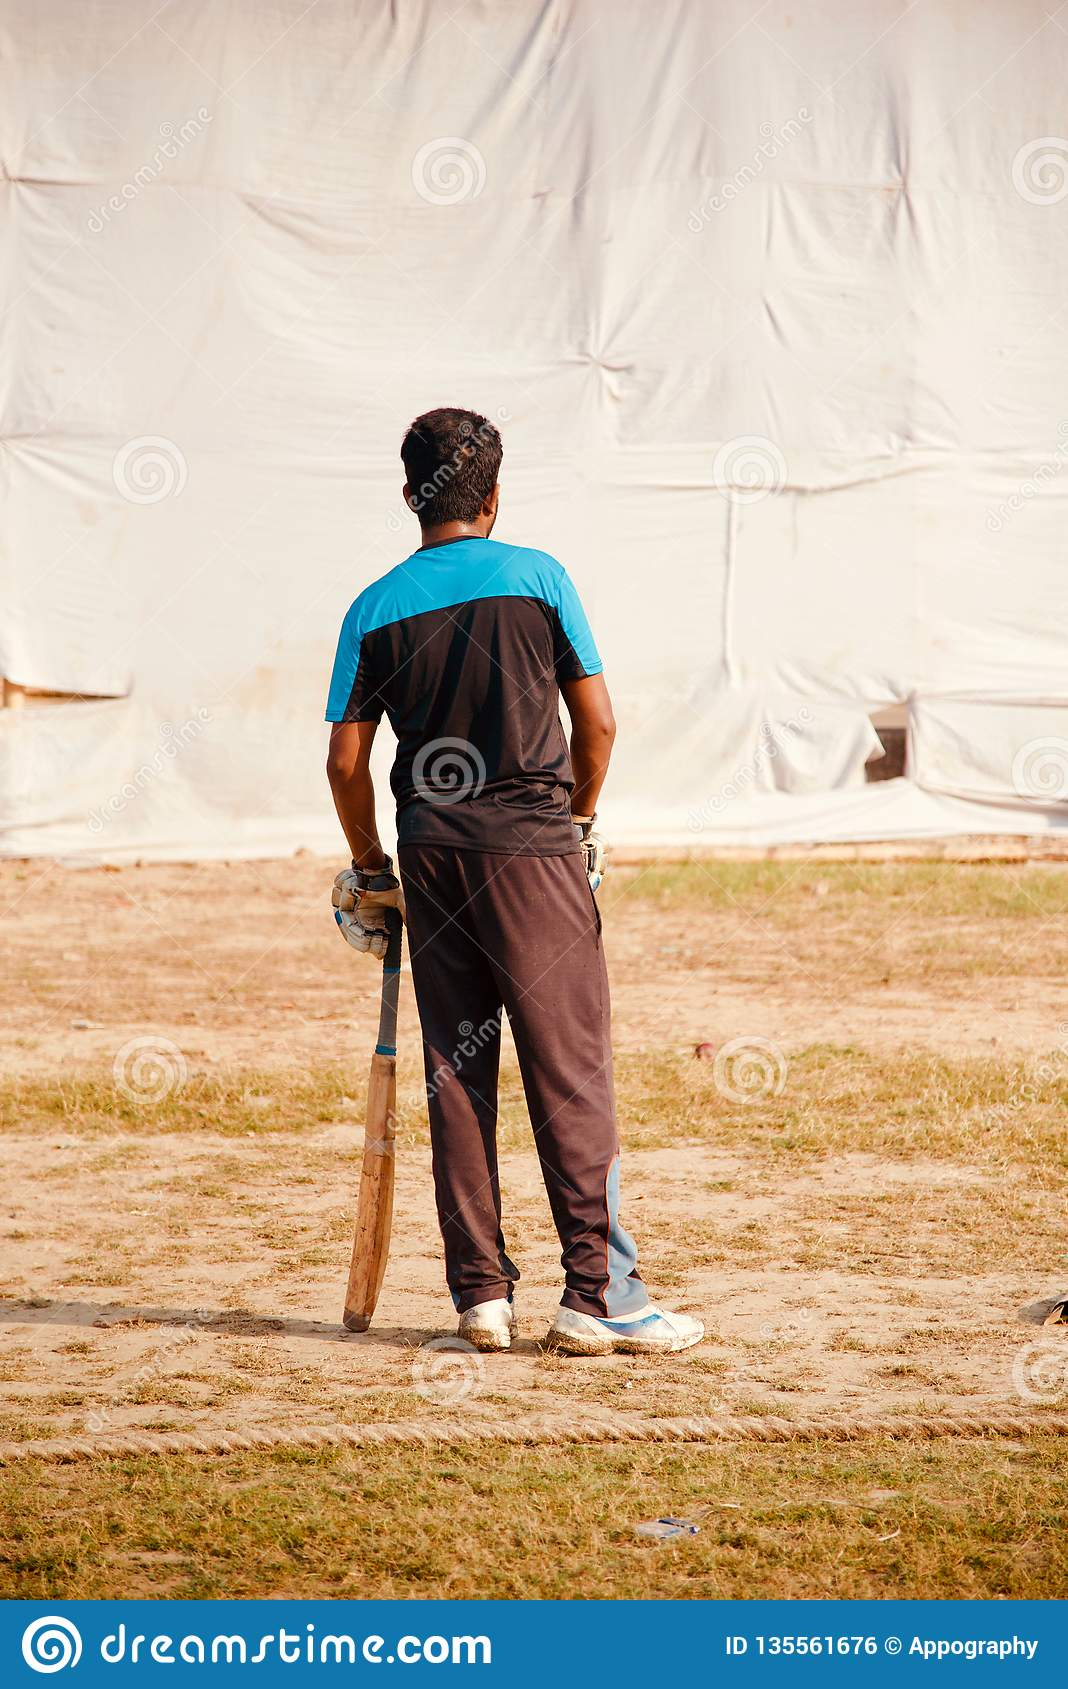 Young man standing in a field holding a bat